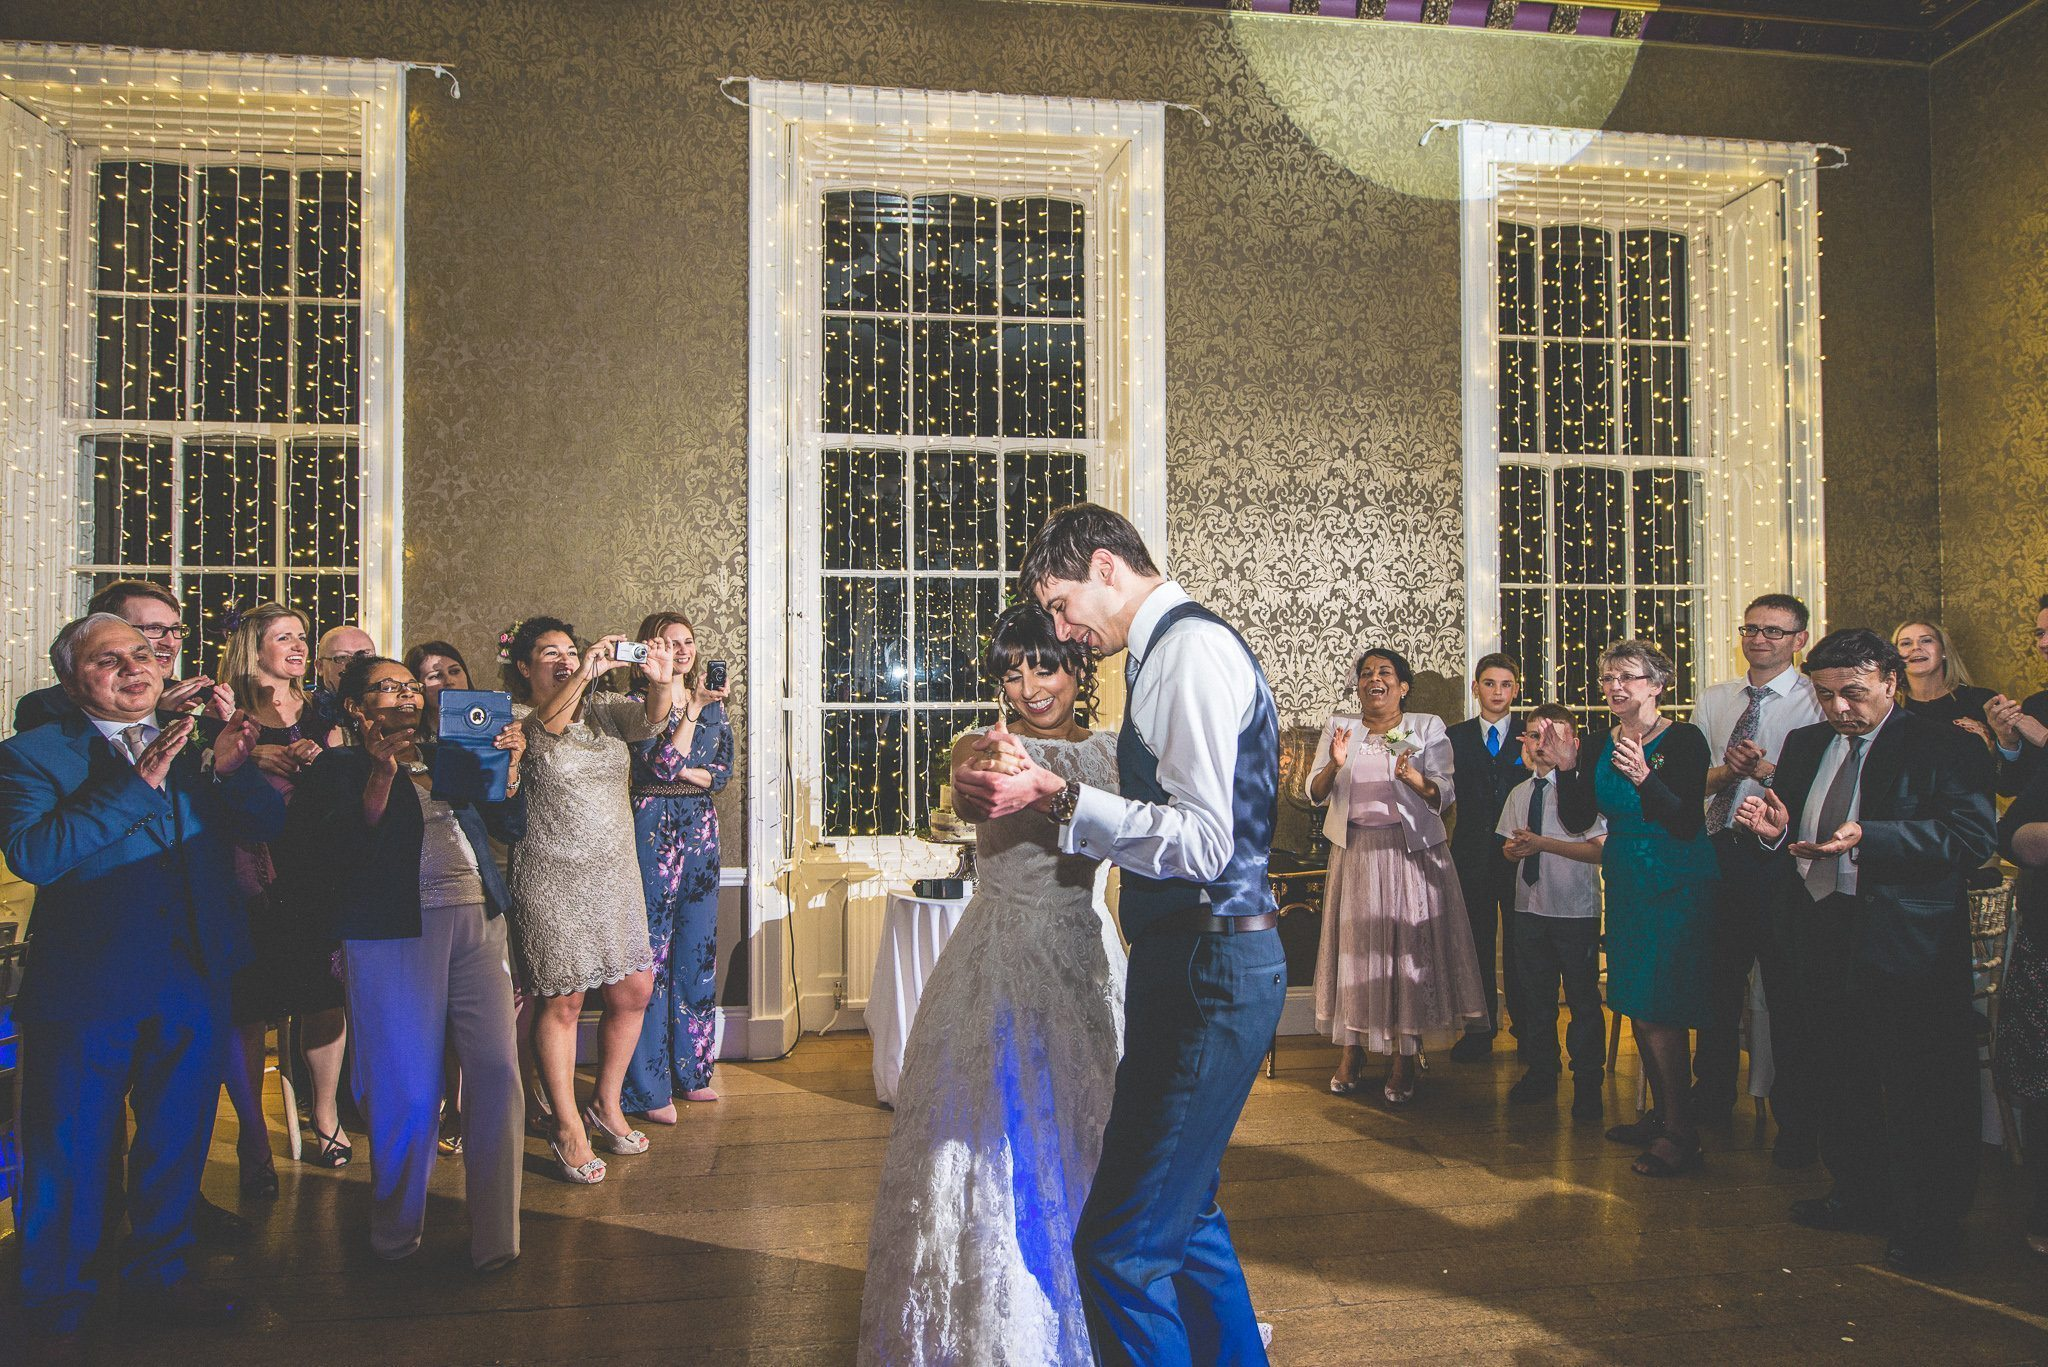 The couple show off their moves on the dancefloor as guests look on and take photos